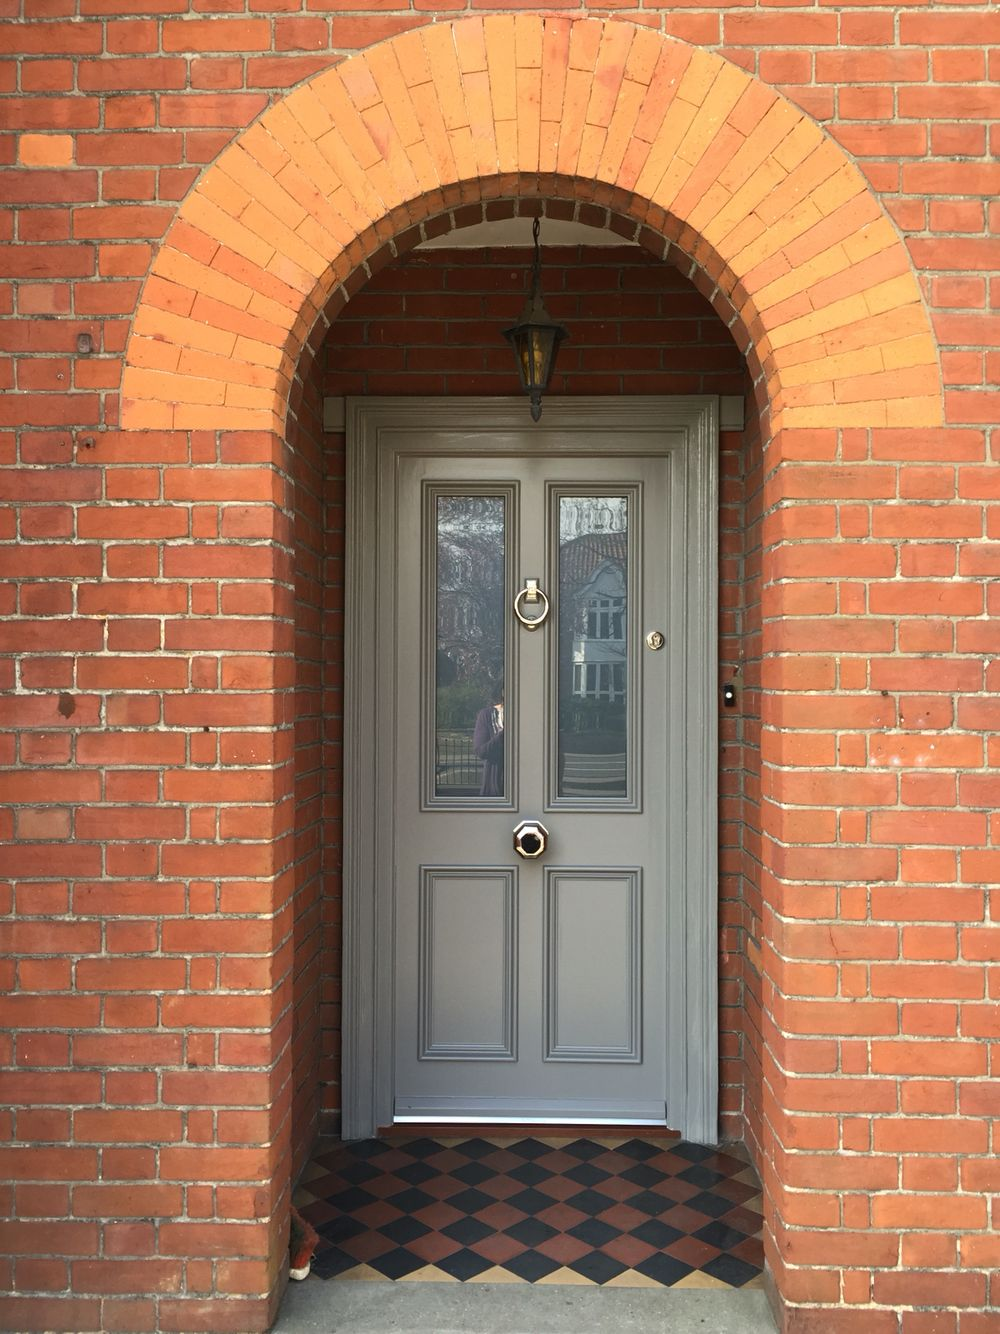 Victorian front door Farrow and ball mole\u0027s breath & Victorian front door Farrow and ball mole\u0027s breath | Interior Barn ...